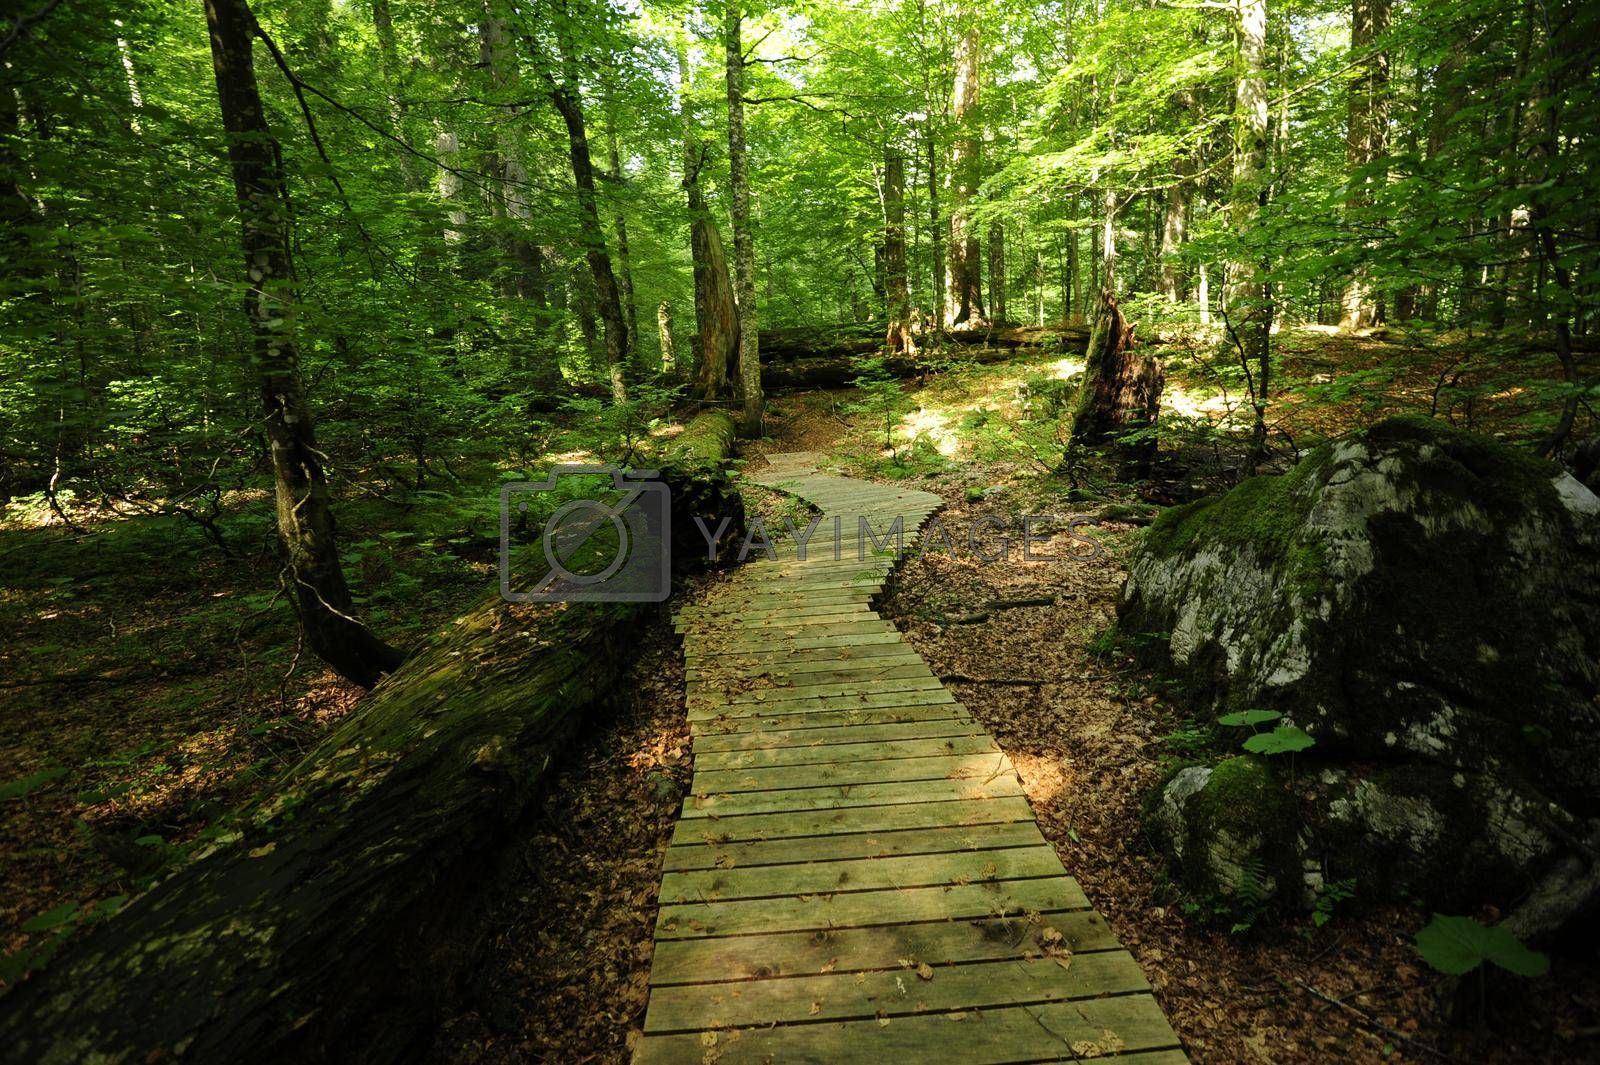 the jungle or primeval forest Rothwald nature reserve in Austria